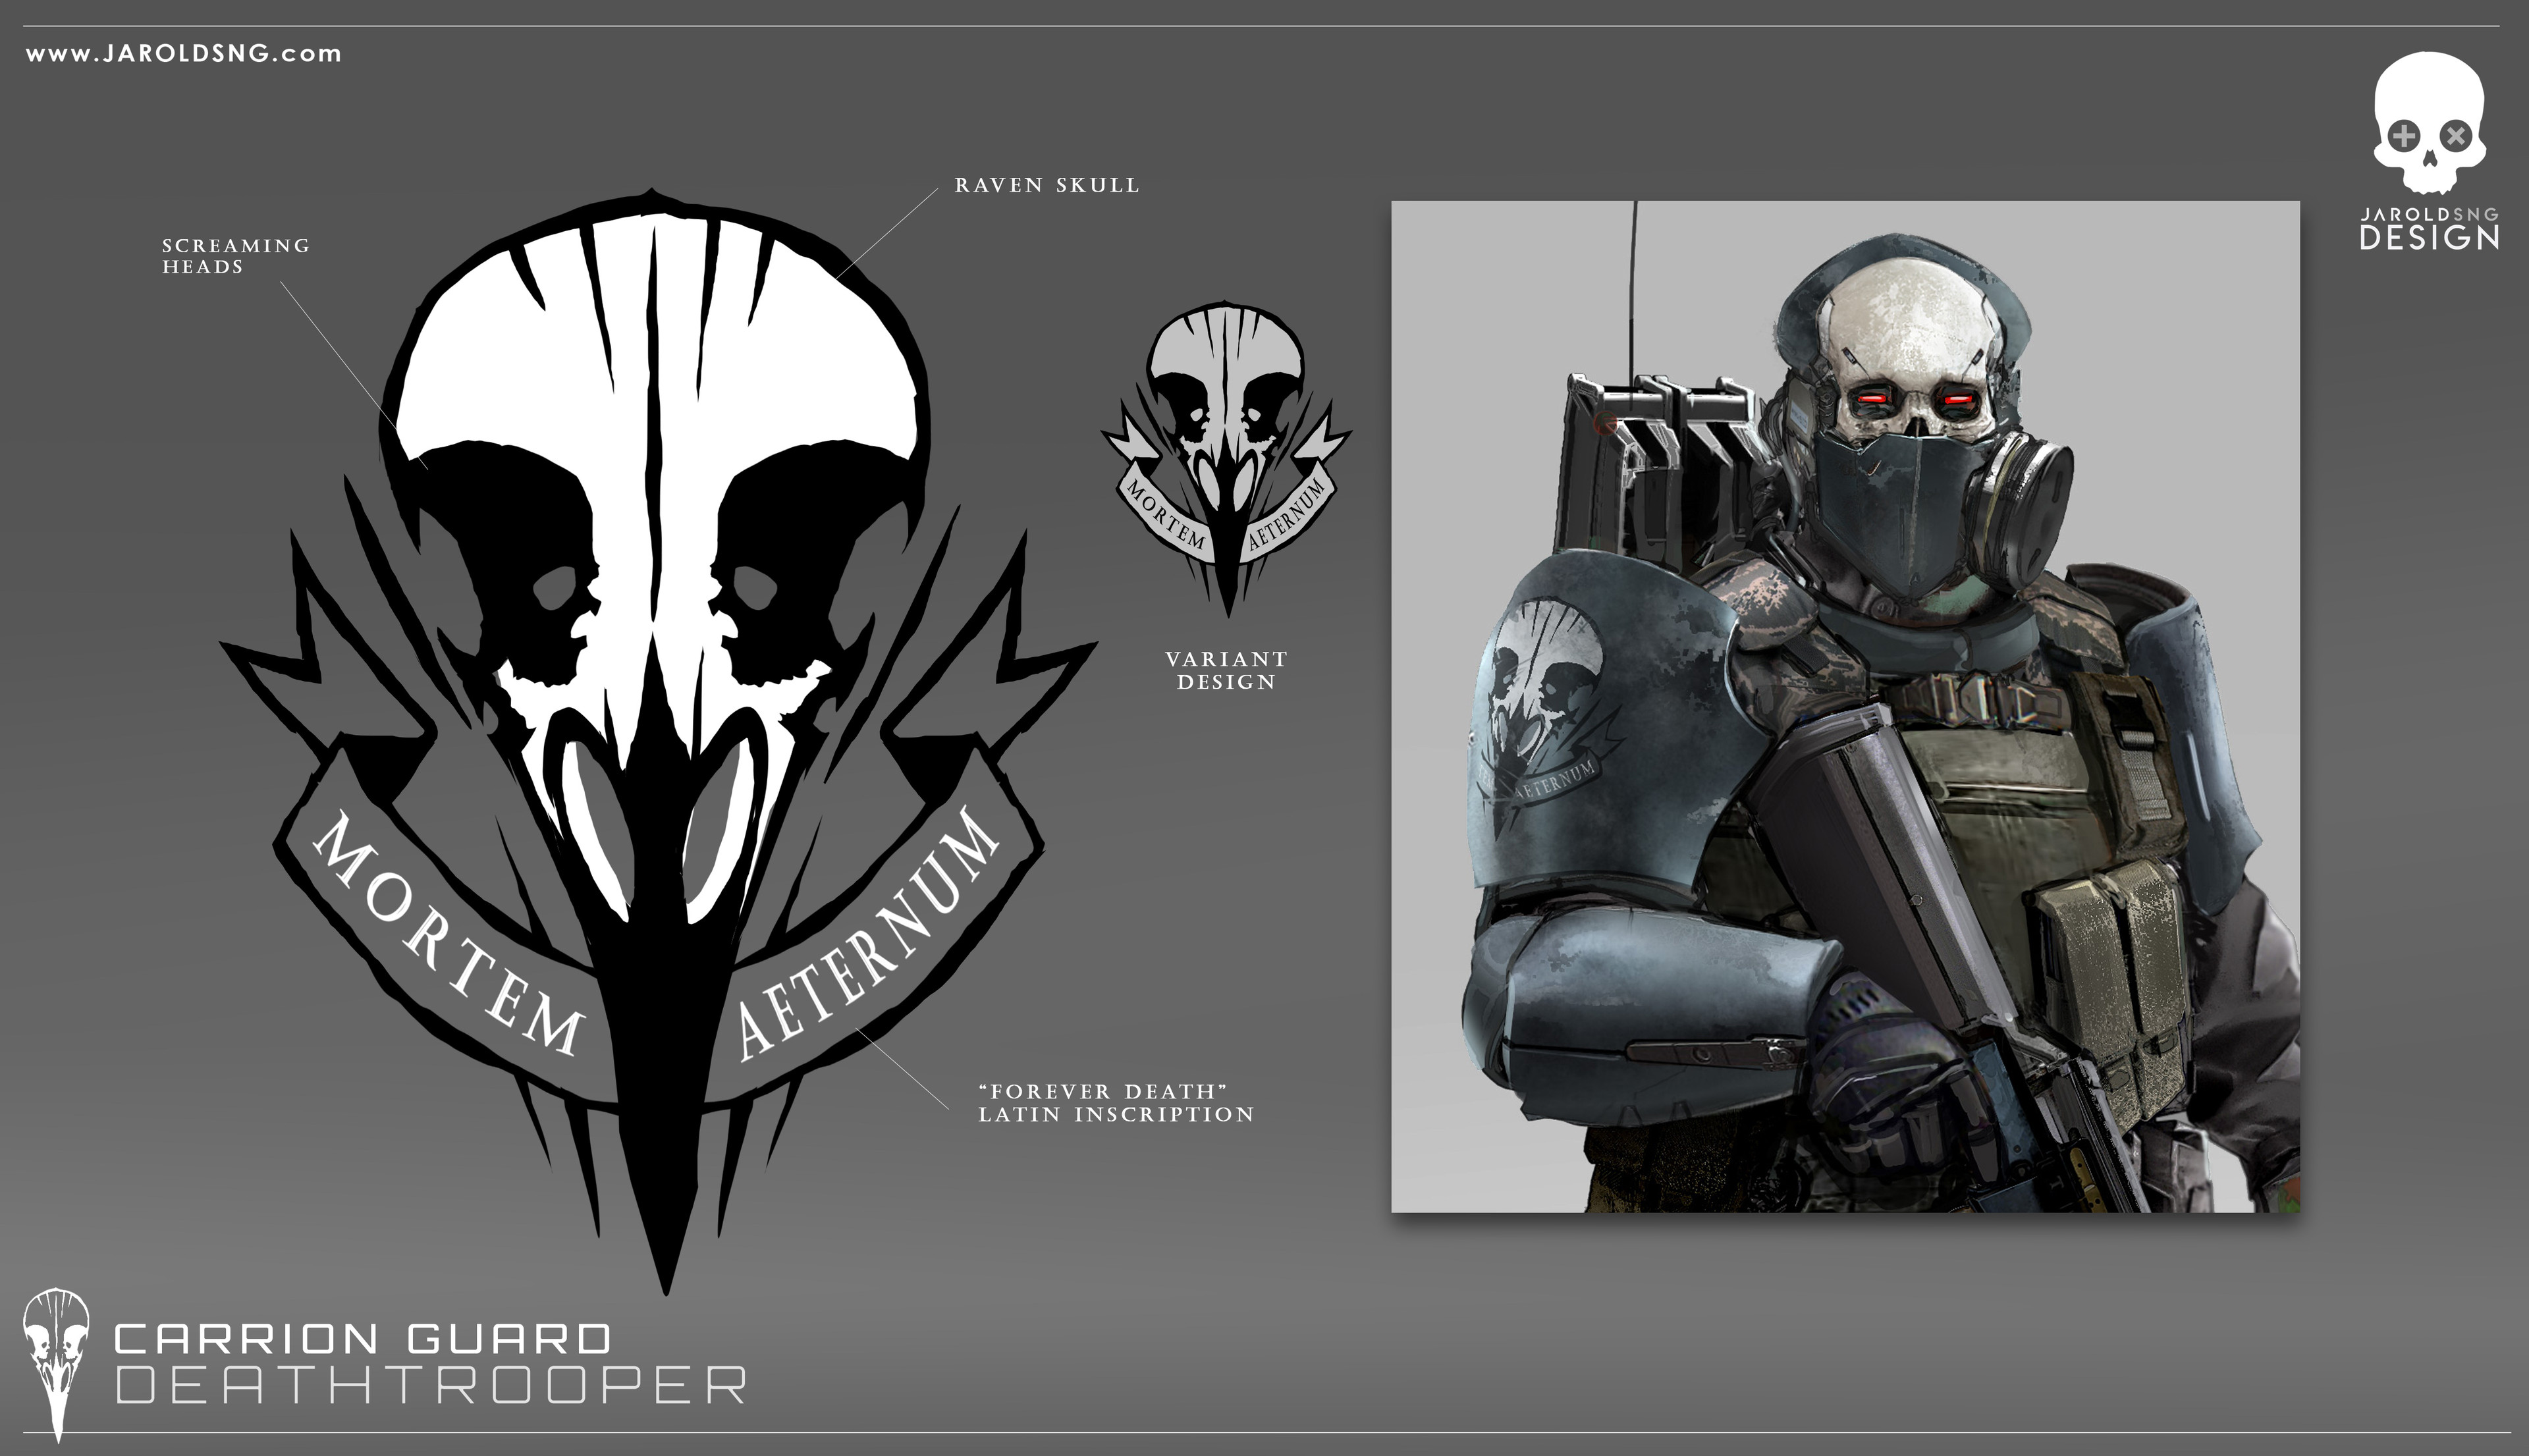 logo design for the Carrion Guard